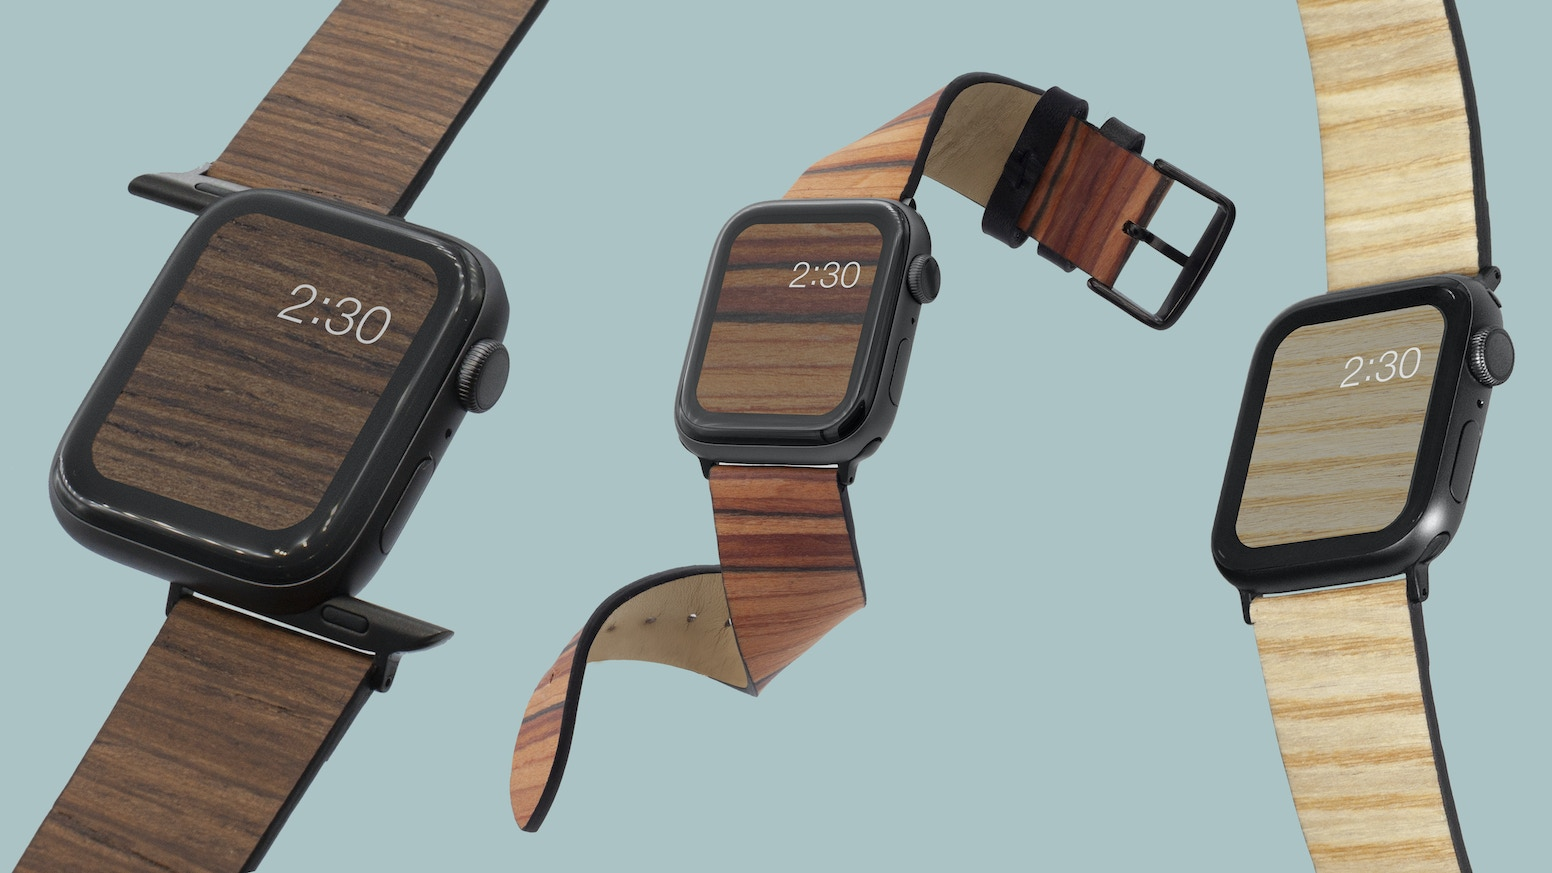 Tech doesn't have to look so techy. A hyper durable vegan strap engineered to calm & upgrade your style with upcycled wood